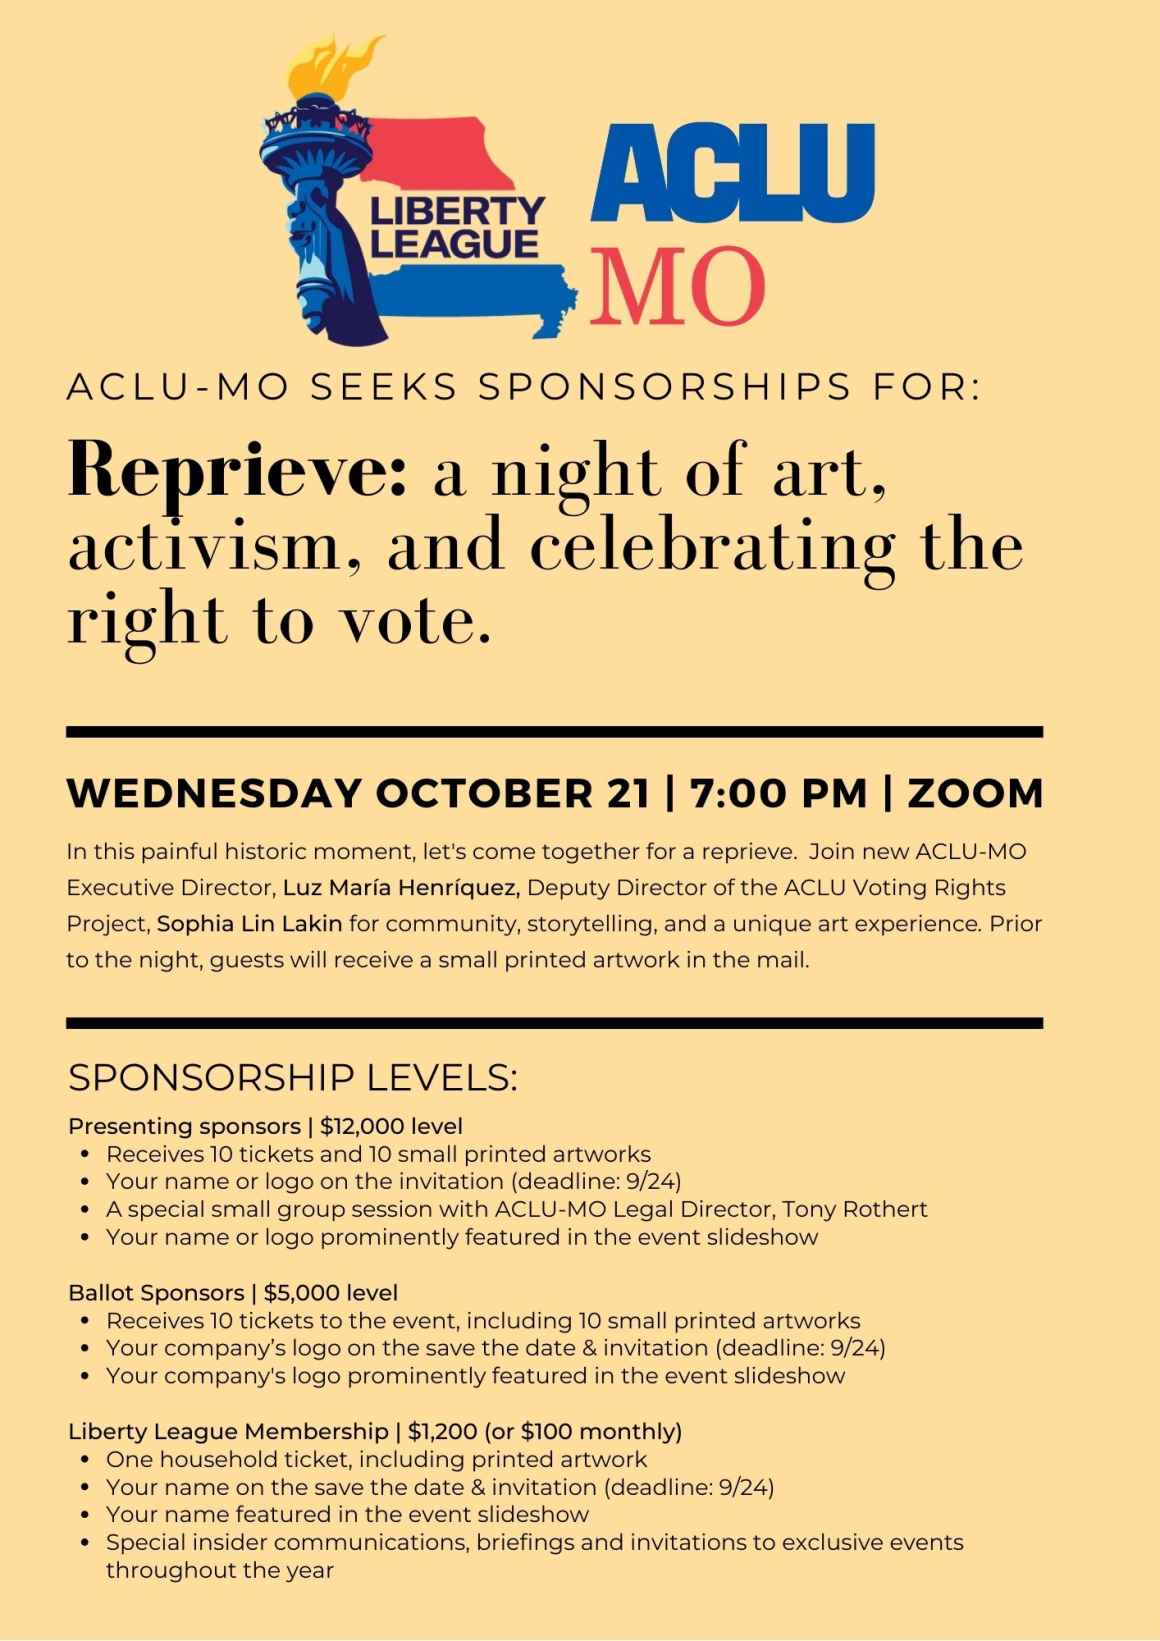 Reprieve: a night of art, activism, and celebrating the right to vote